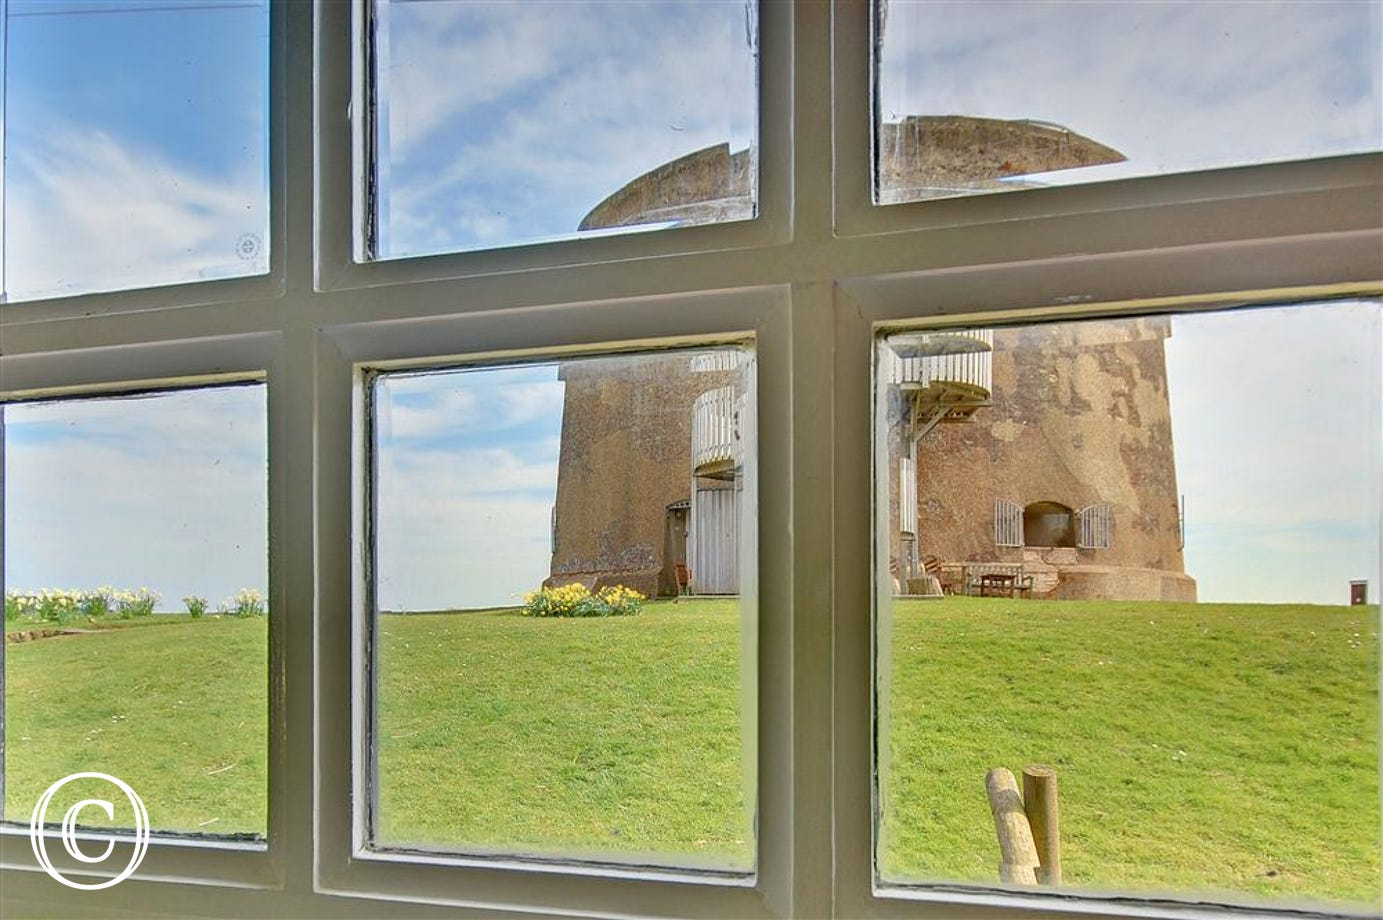 Enjoy the view of the Martello Tower from within.